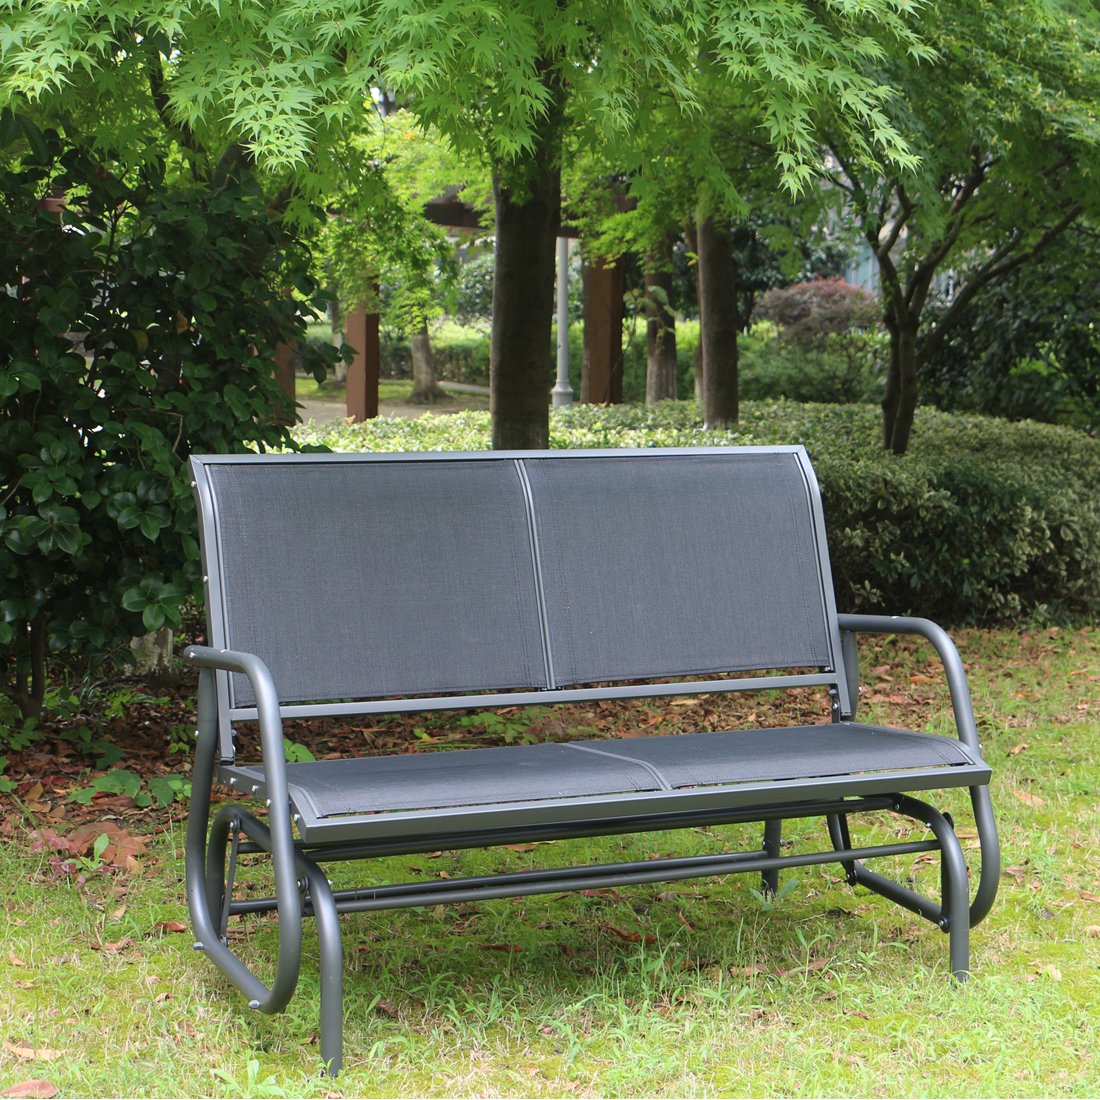 SUPERJARE Outdoor Swing Glider Chair, Patio Bench 2 Person, Garden Rocking Seating - Gray by SUPERJARE (Image #2)